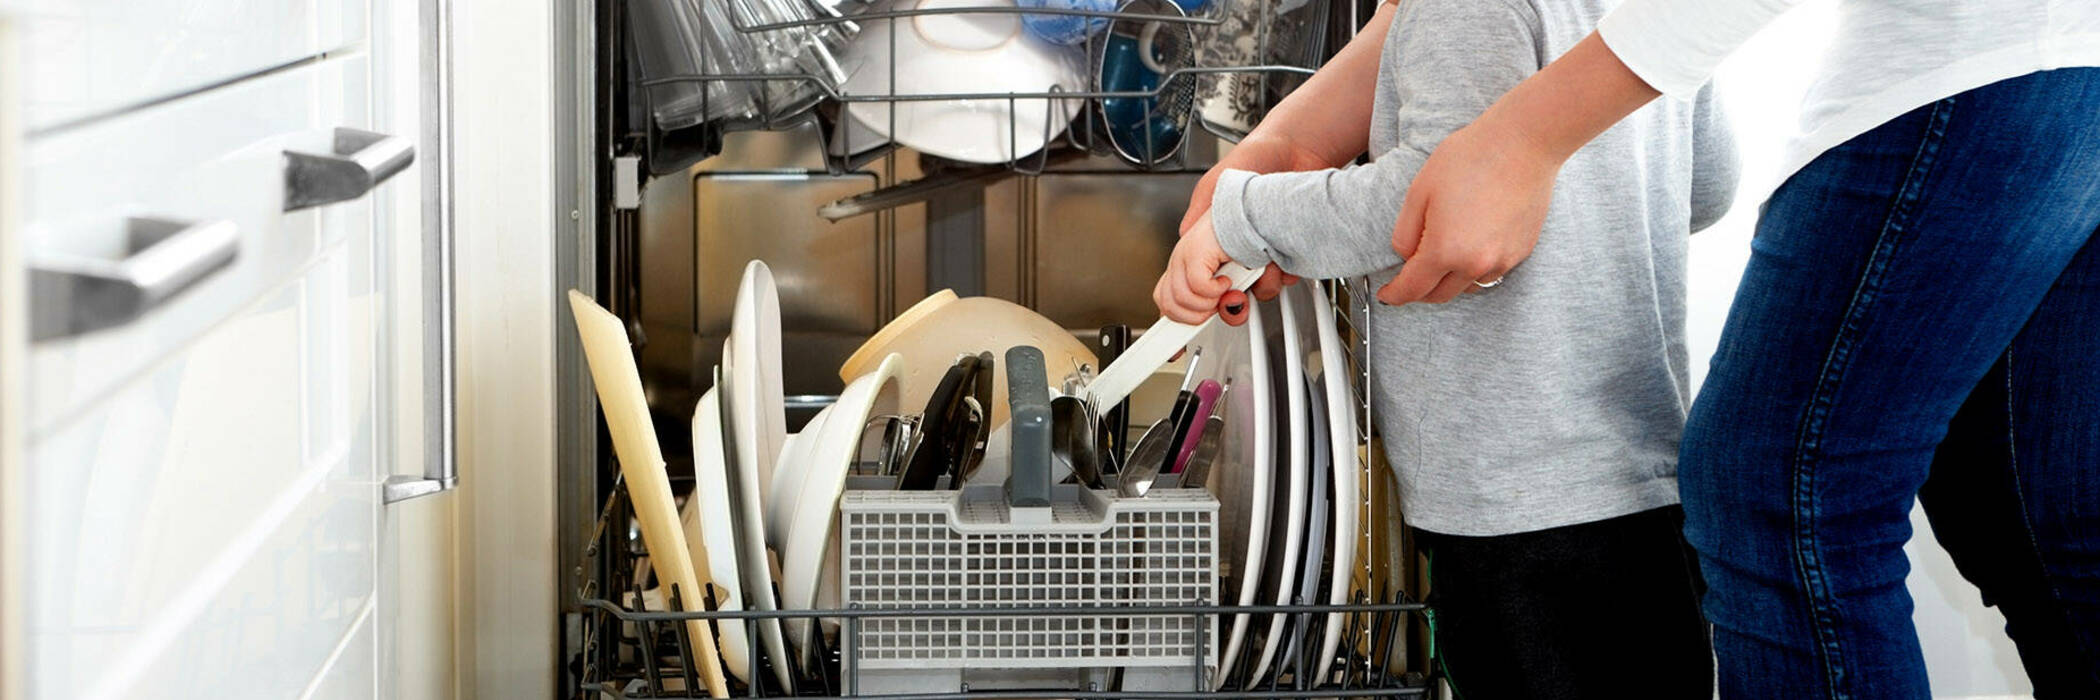 17mar what not to put in the dishwasher hero